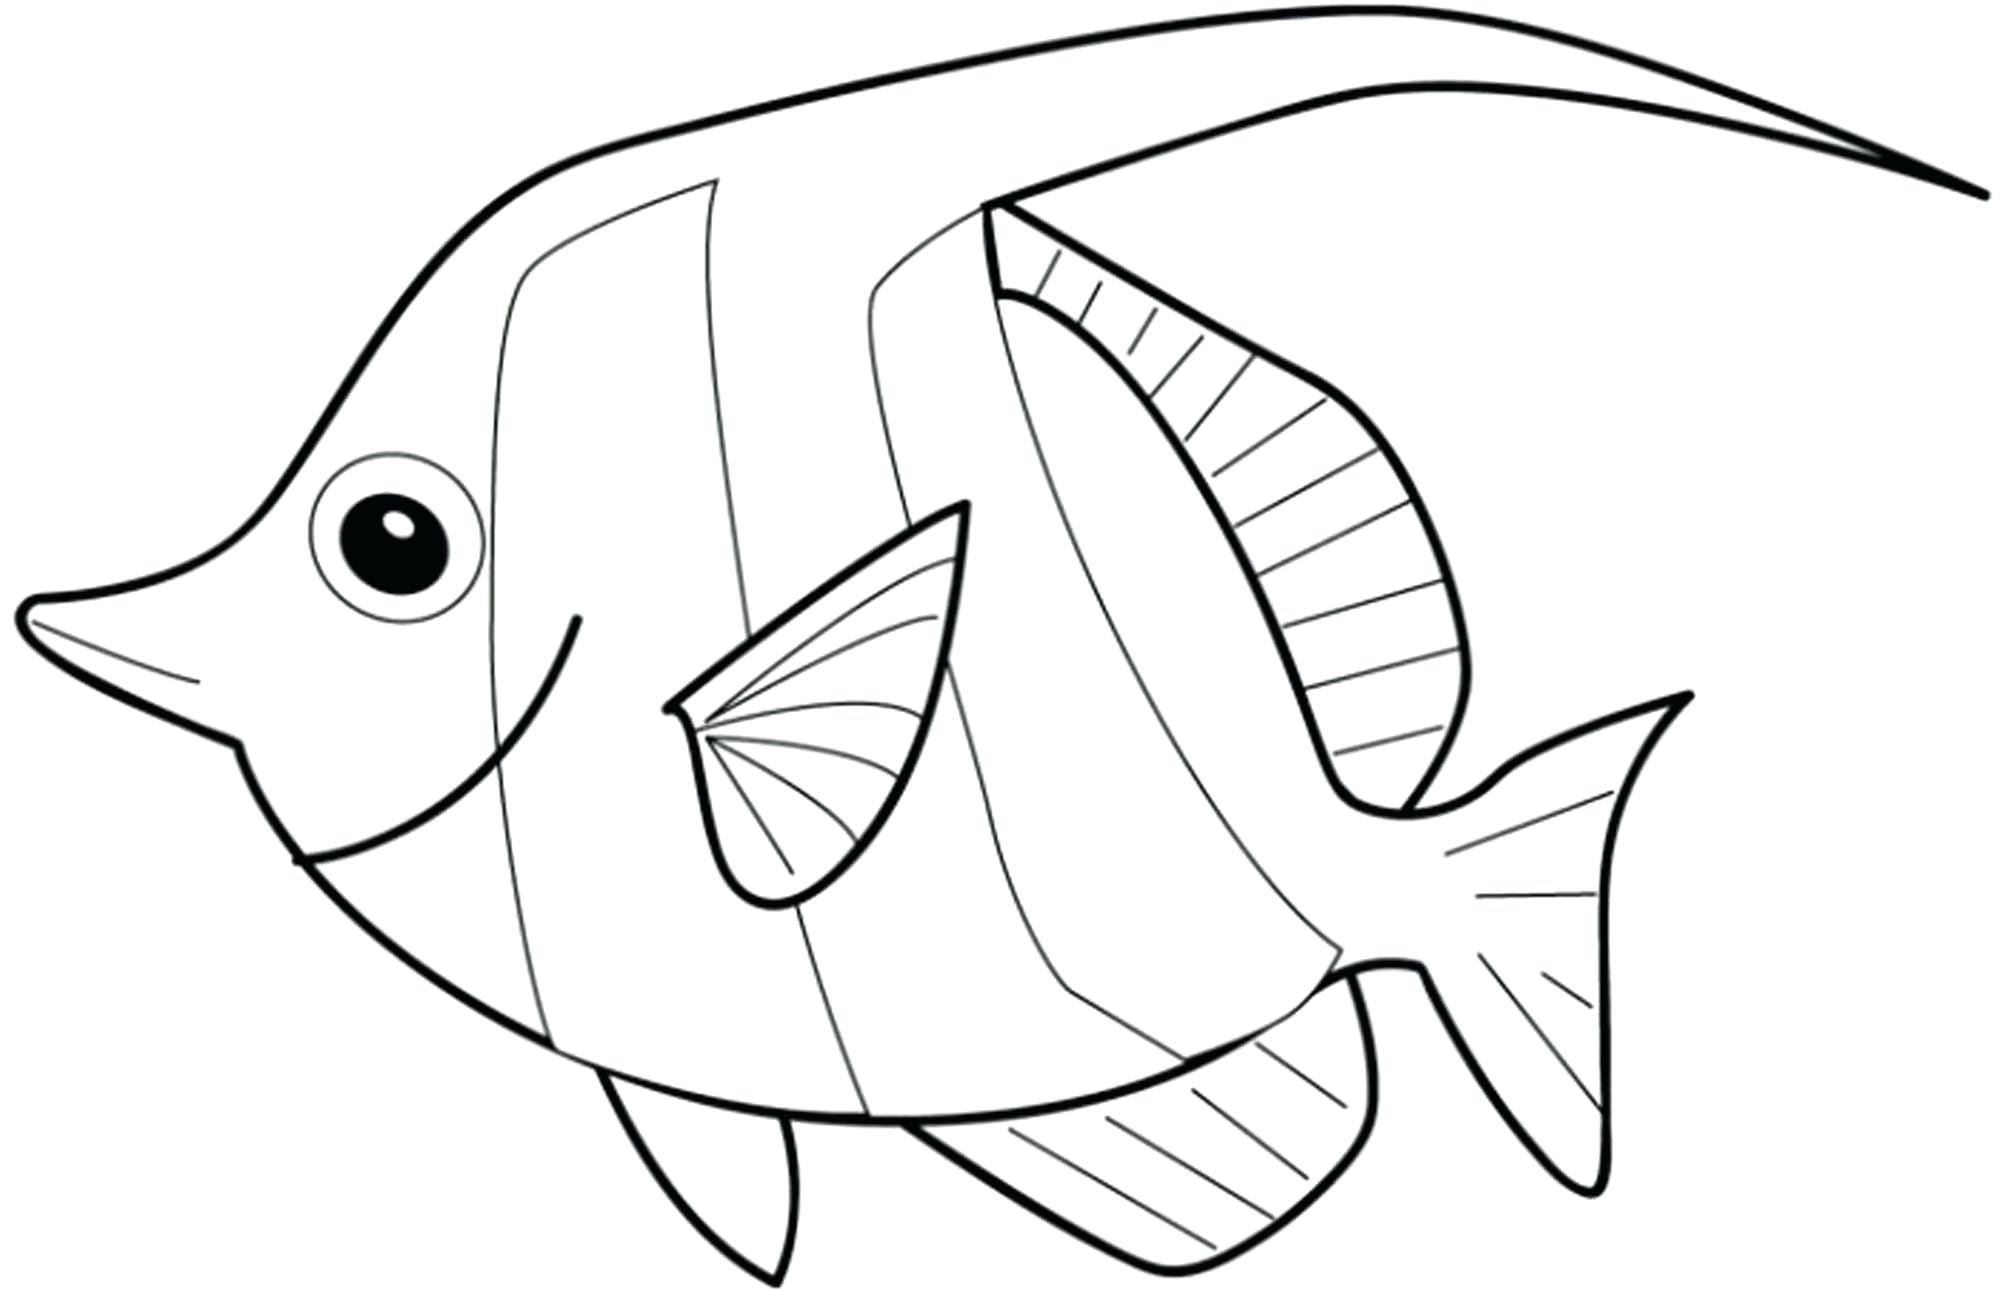 2000x1291 Small Fish Coloring Pages Coloring Pages Printable